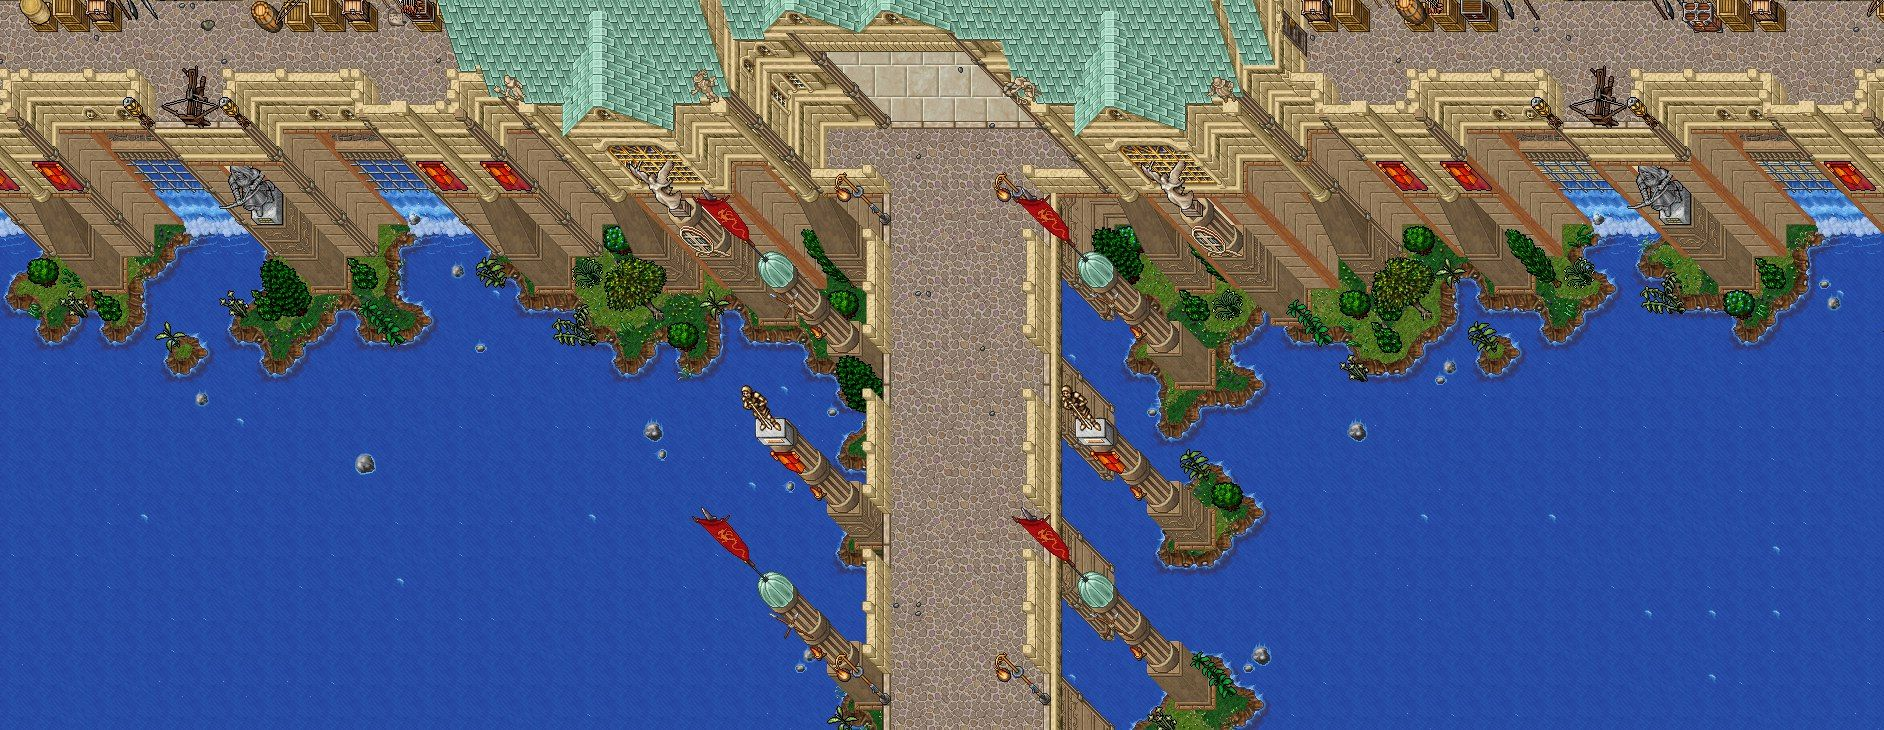 Tibia World Map.New Open Fantasy World With Epic Monsters Pixelart 2d Tibia